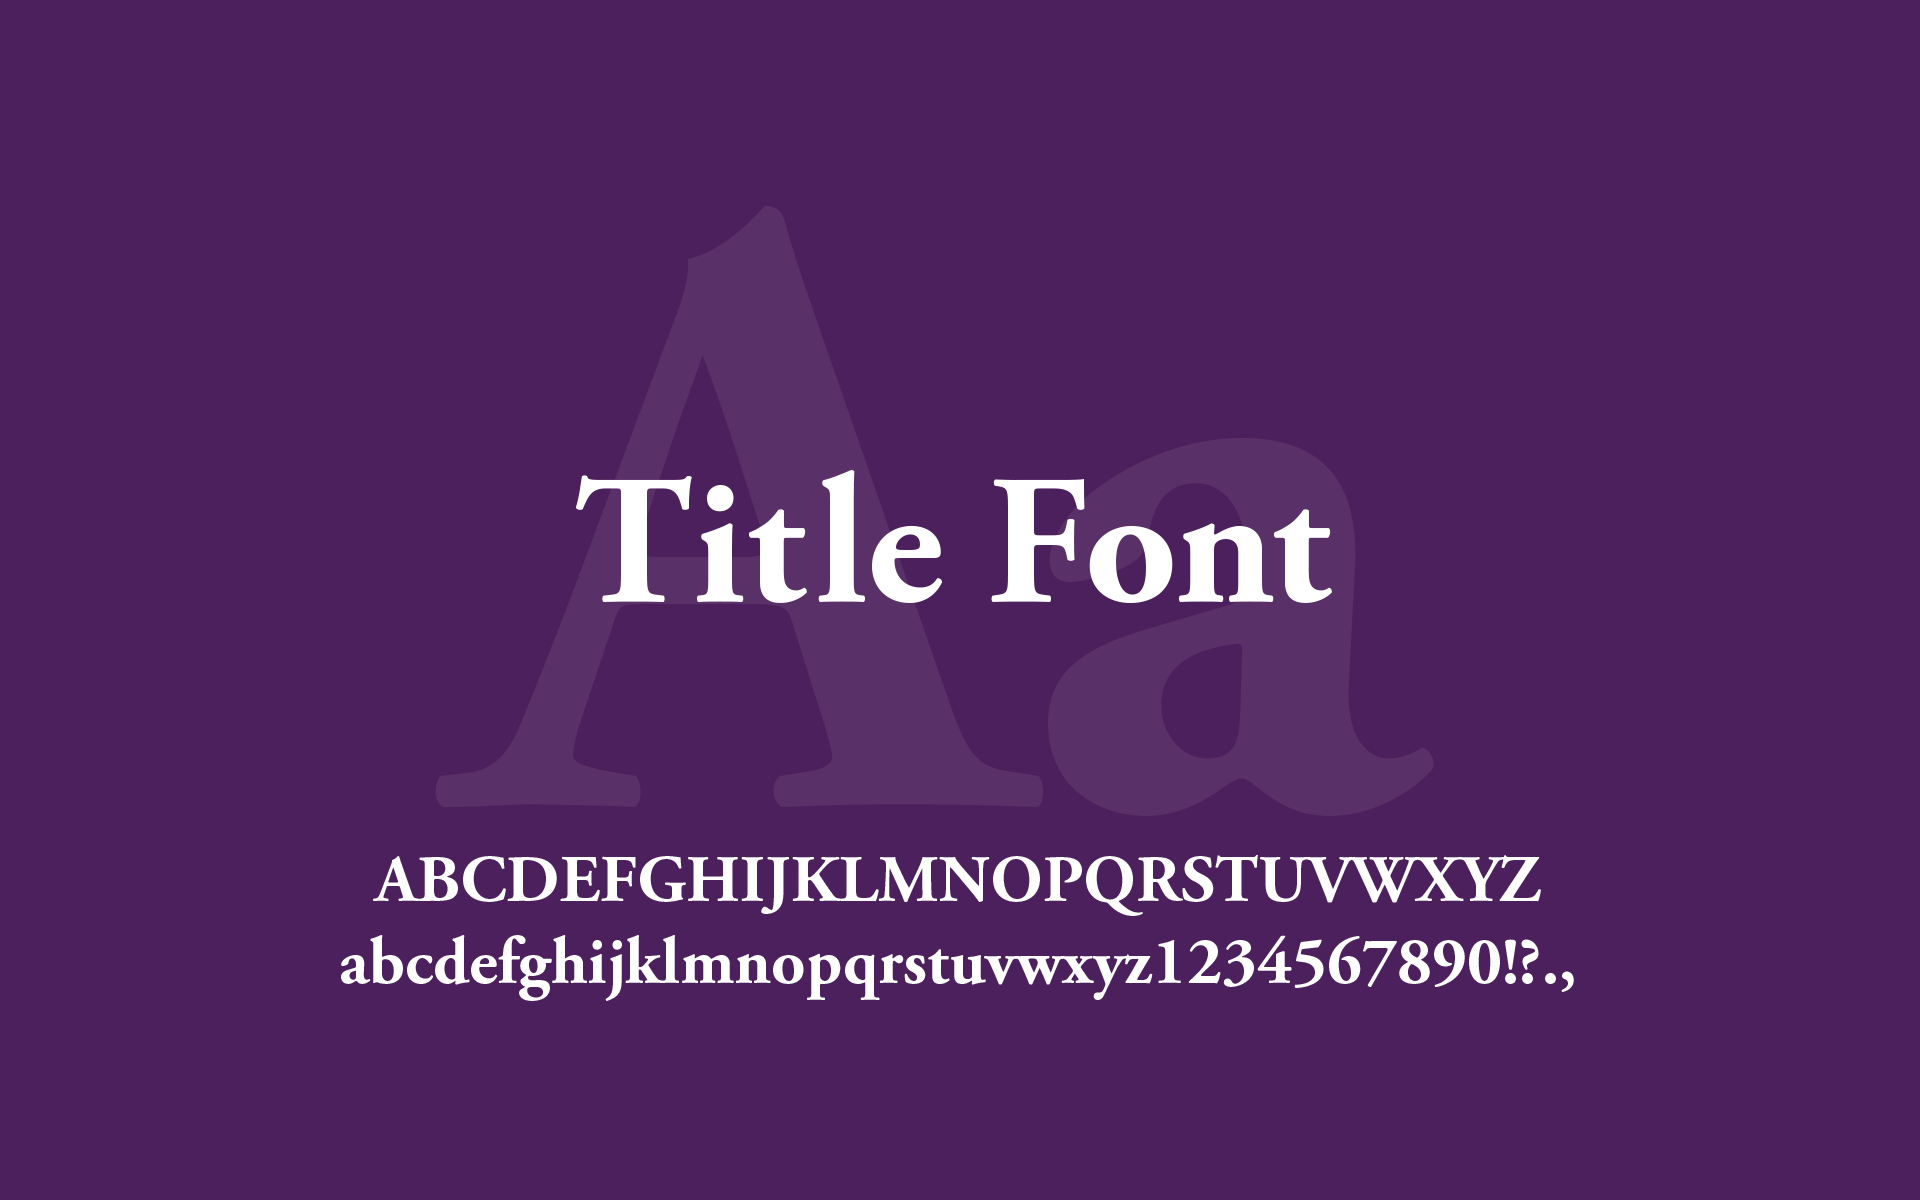 Type Title Font